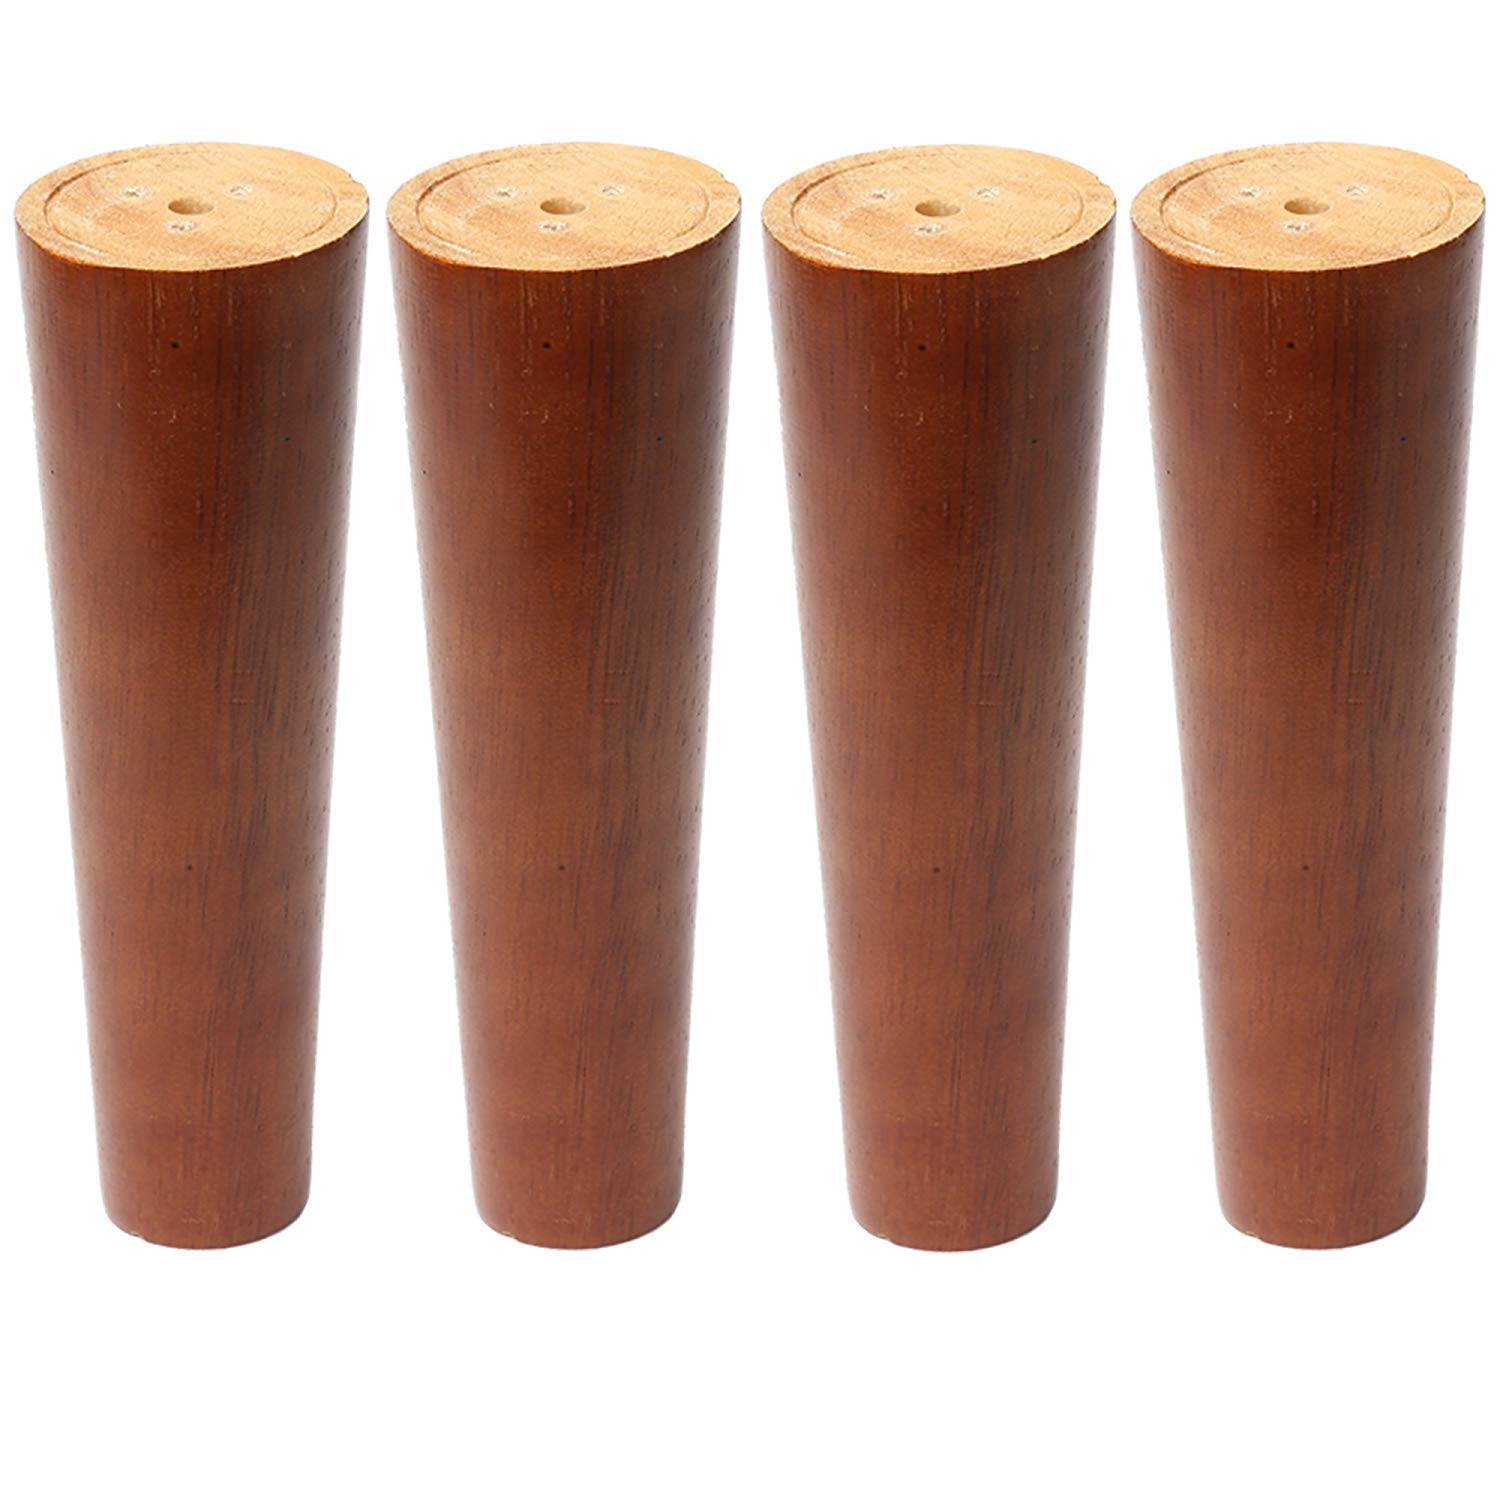 Sweet melodi Round Solid Wood Furniture Sofa/Chair/Couch/Loveseat/Cabinet Replacement Legs with Special Installation Parts,Perfect for IKEA or US Made Furniture(Walnut Color, 6 Inches,4 pcs)